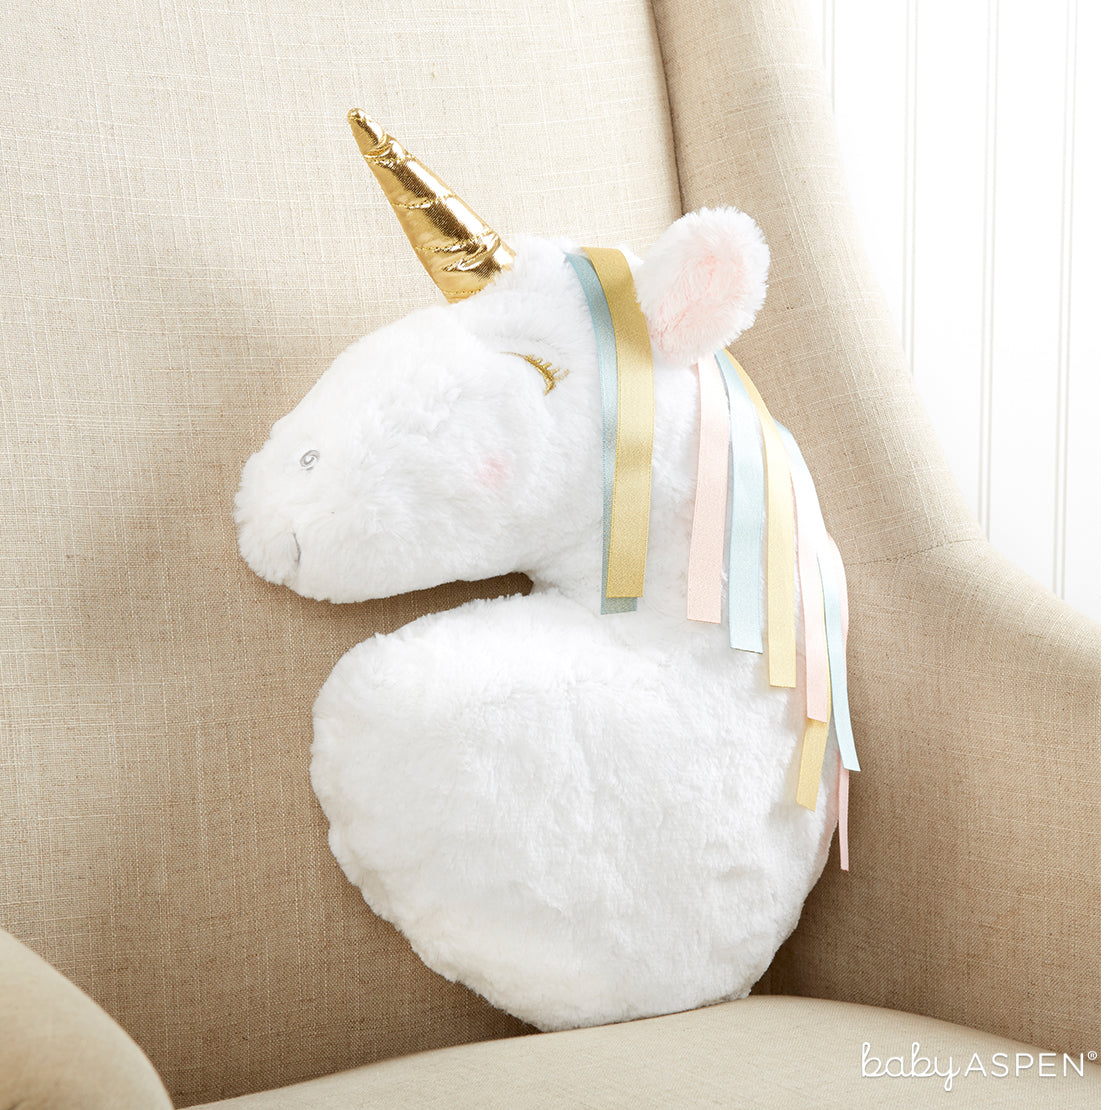 Simply Enchanted Unicorn Decorative Pillow | Magical Unicorn Themed Baby Gifts | Baby Aspen